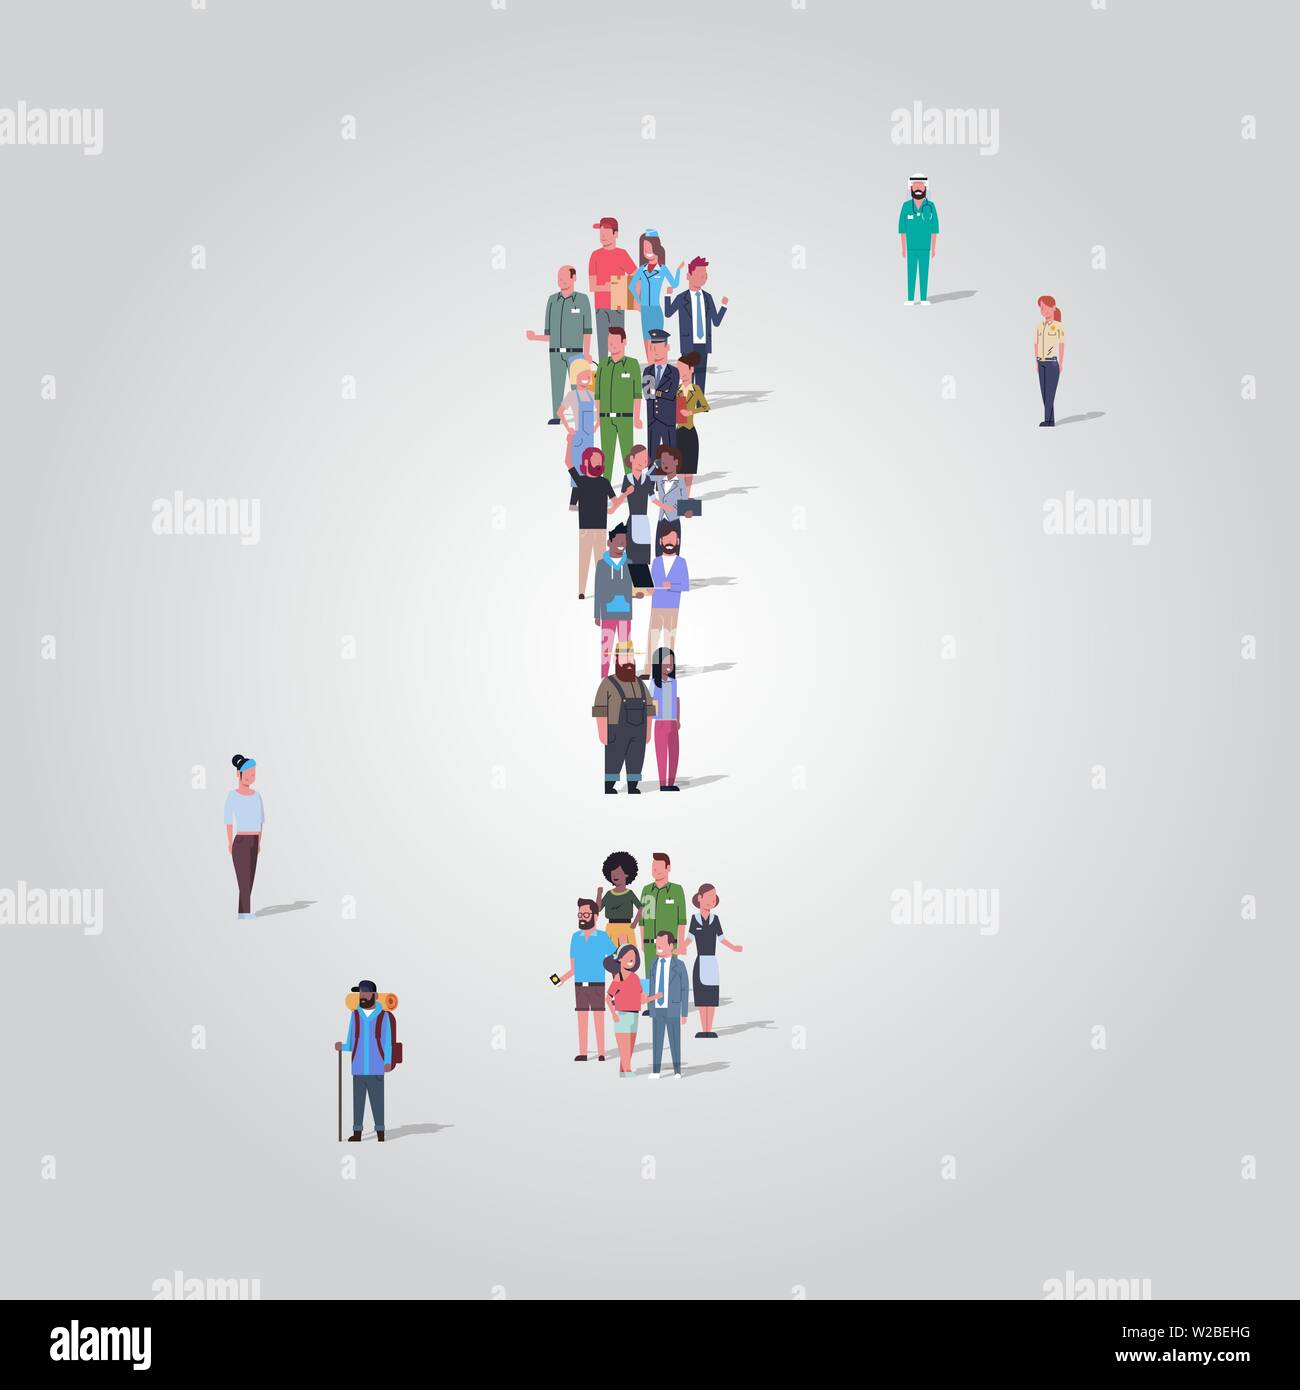 big people crowd gathering in shape of exclamation mark icon social media and community concept different occupation employees group standing together - Stock Image